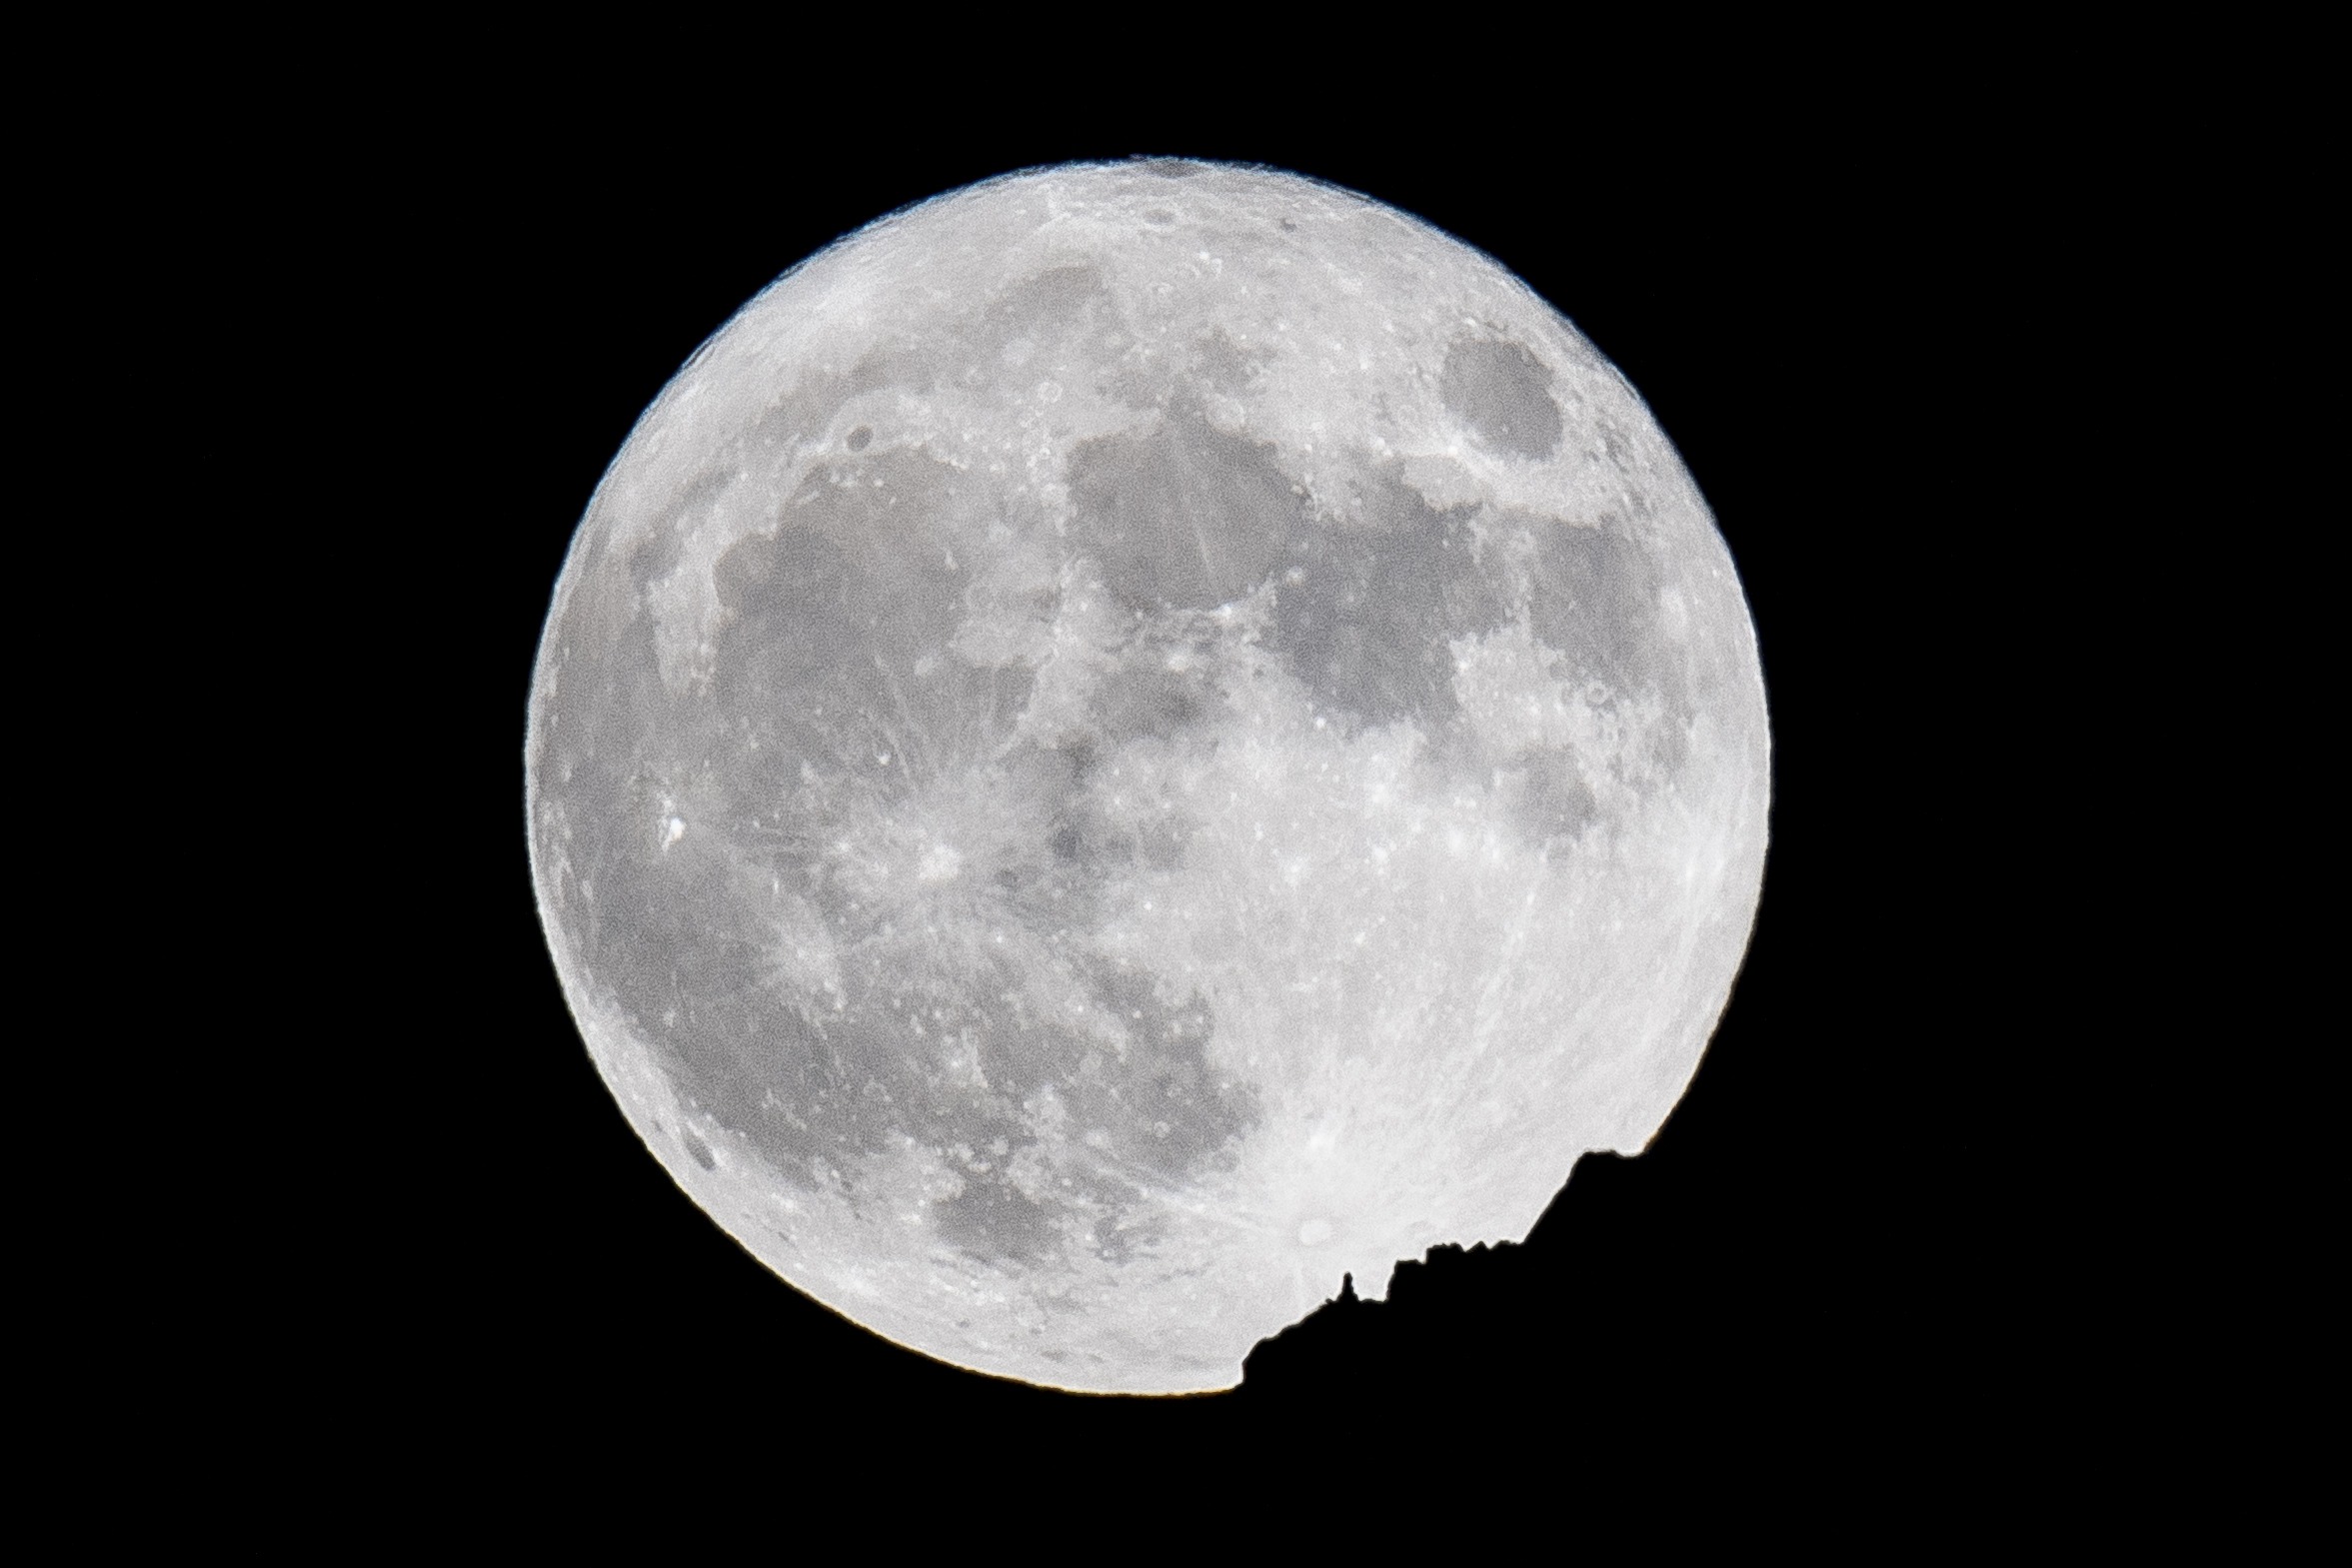 The supermoon rises behind a mountain in Arosa, Switzerland, 14 November 2016. The moon is the largest full moon since 1948 also known as the 'supermoon,' when the moon reaches its closest point to Earth. The next time the moon will be this close will be on 25 November 2034.